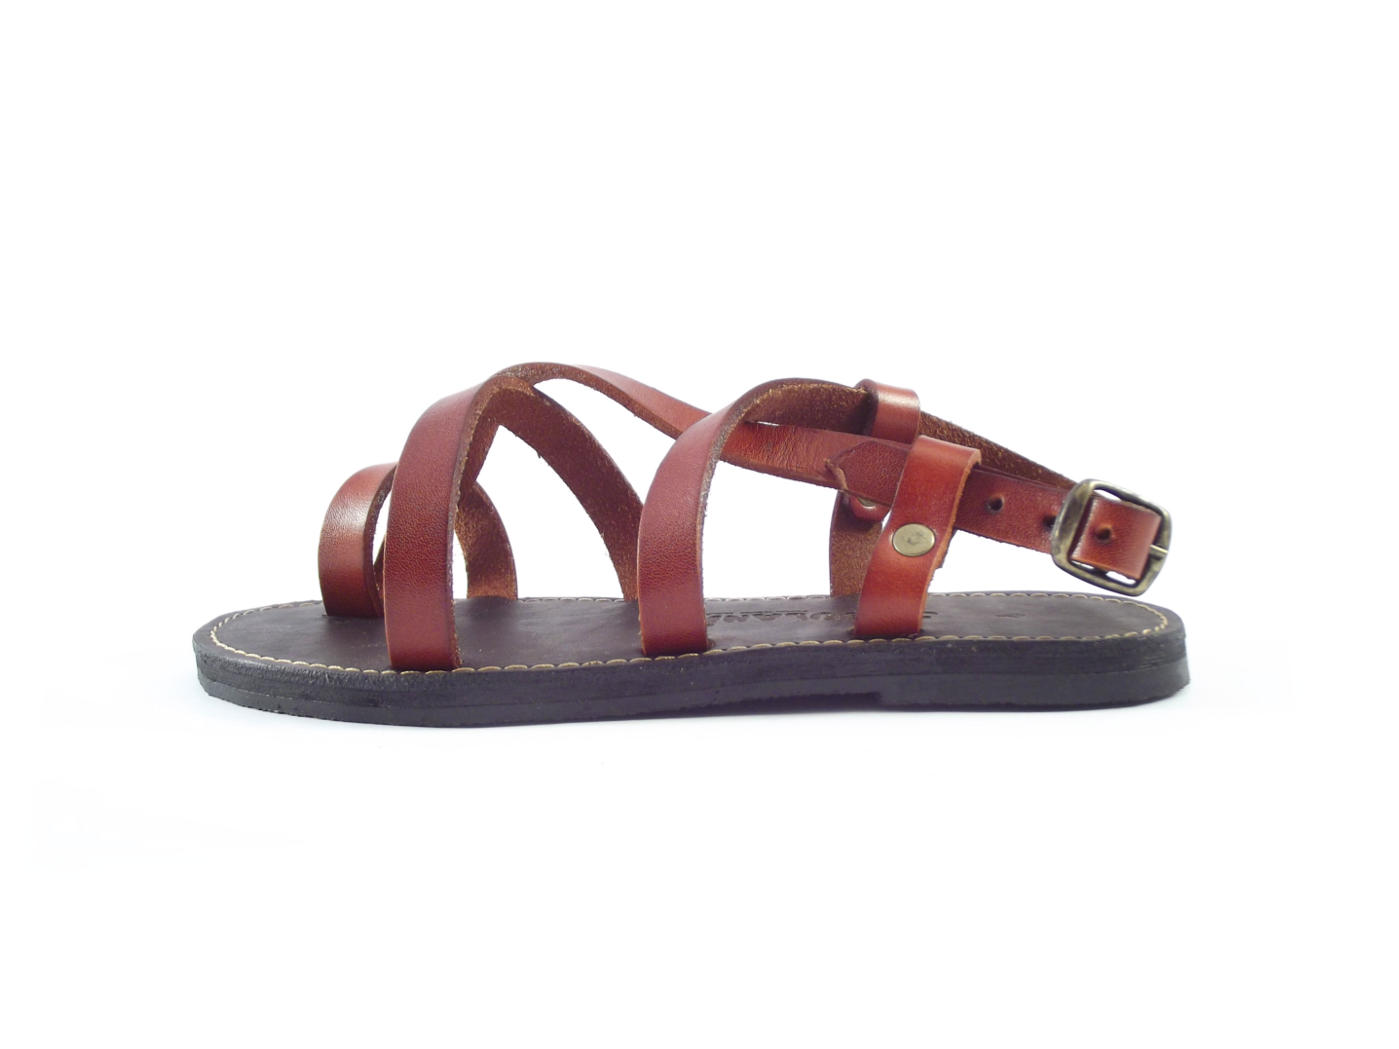 ed635b090 Genuine leather ankle strap flat sandals for women